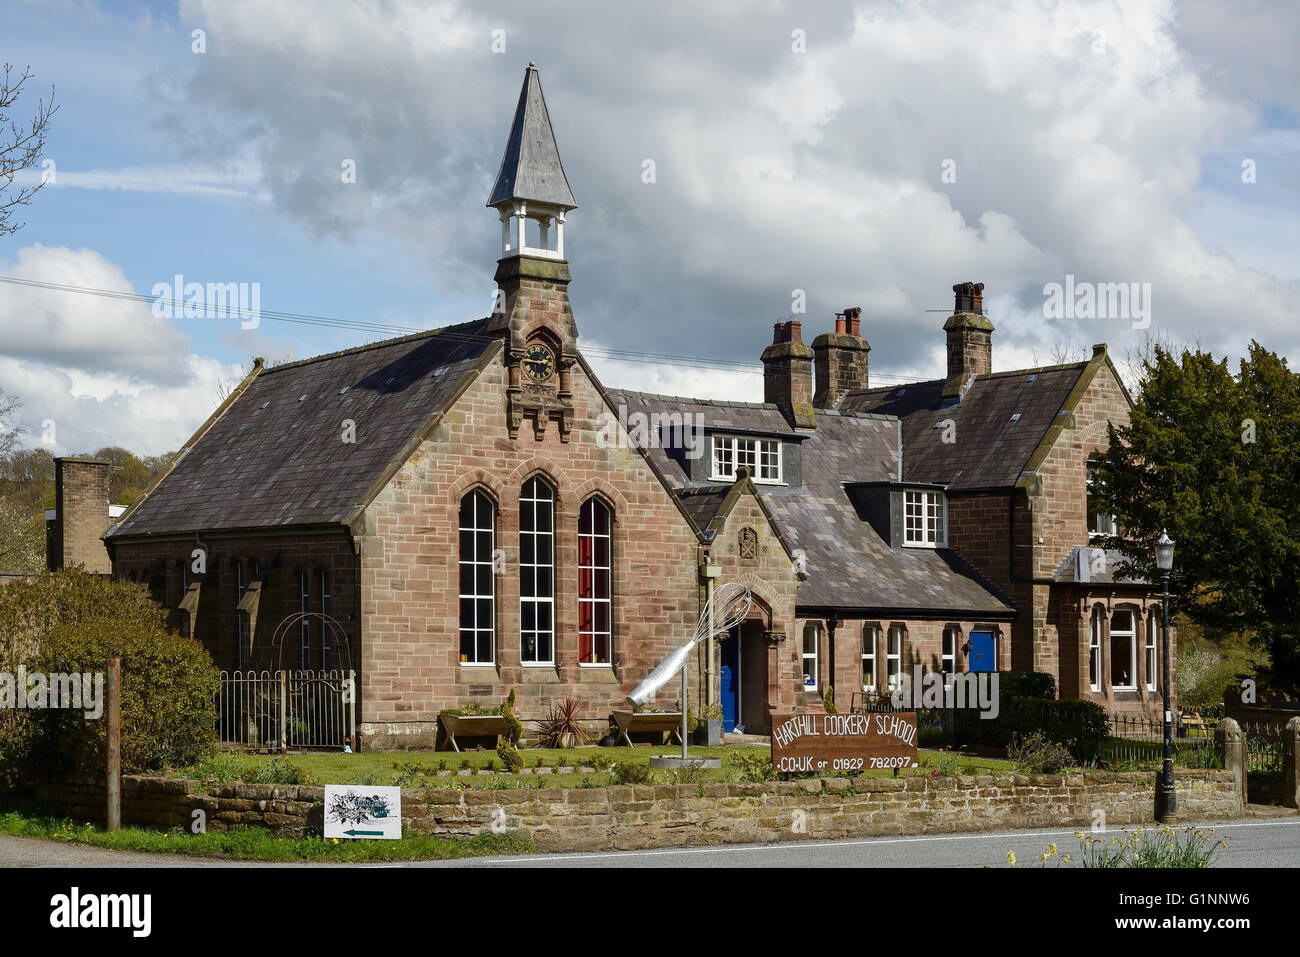 The Harthill Cookery School in the centre of Harthill village, Cheshire UK - Stock Image